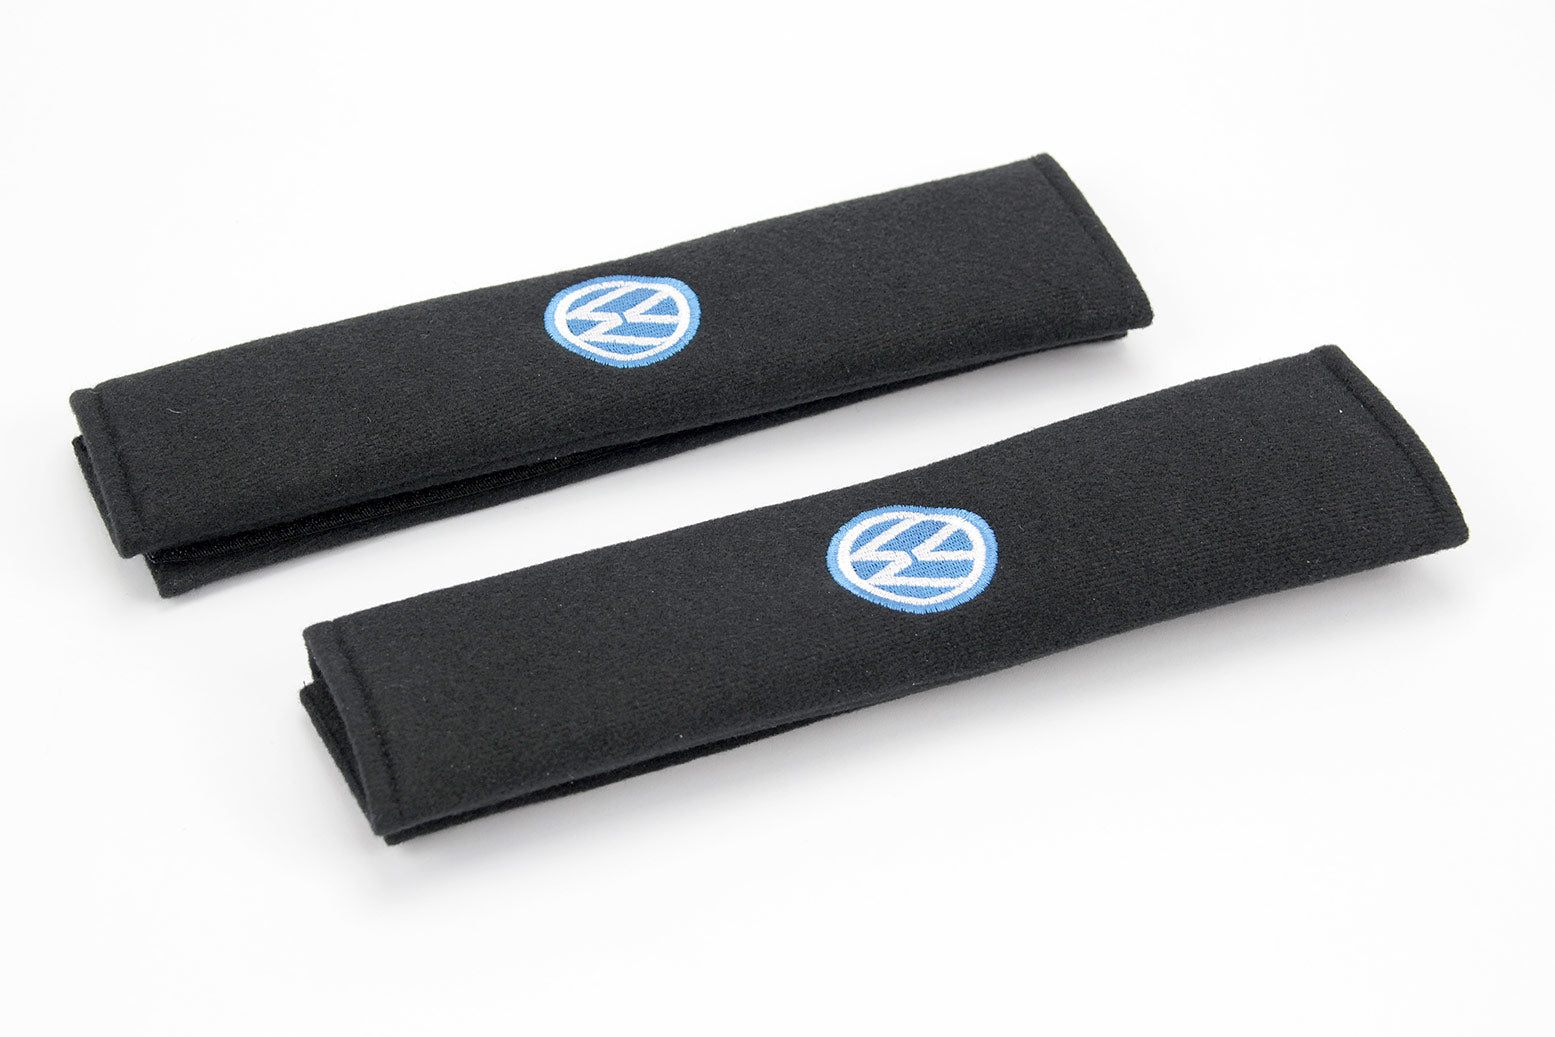 VW logo embroidered on padded seat belt covers.